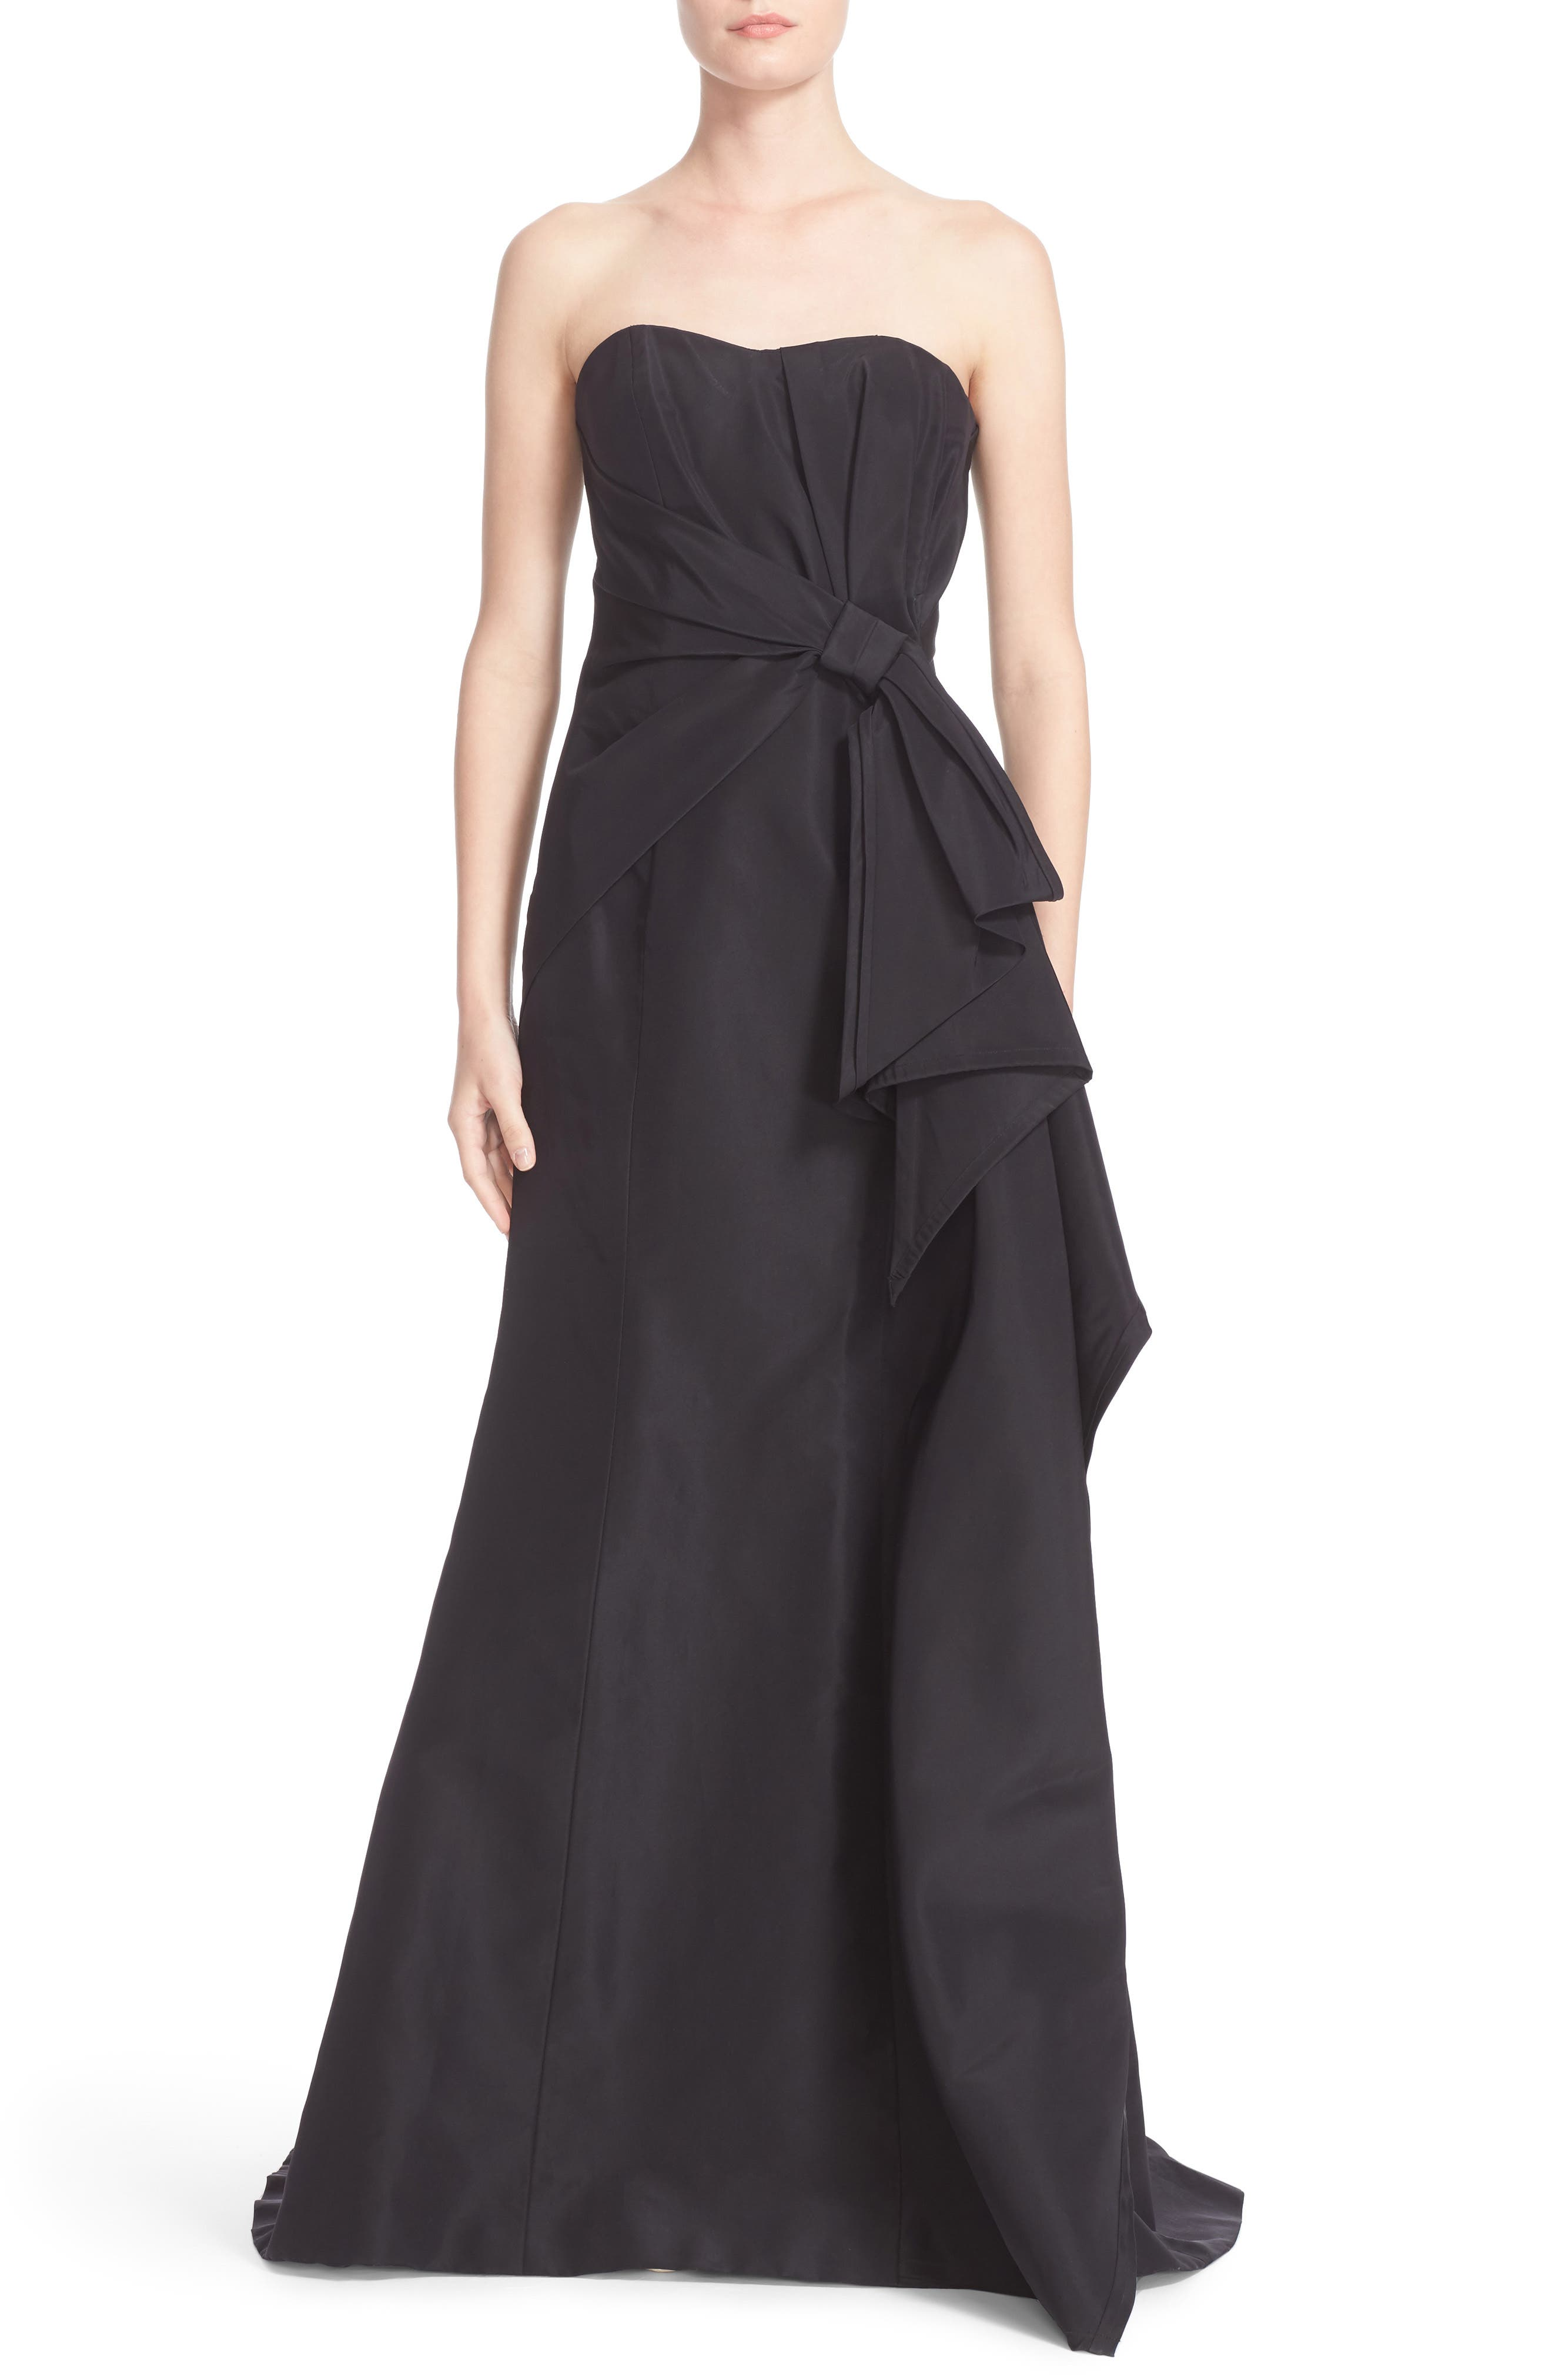 Alternate Image 1 Selected - Carolina Herrera Bow Detail Strapless Silk Faille Gown (Nordstrom Exclusive)